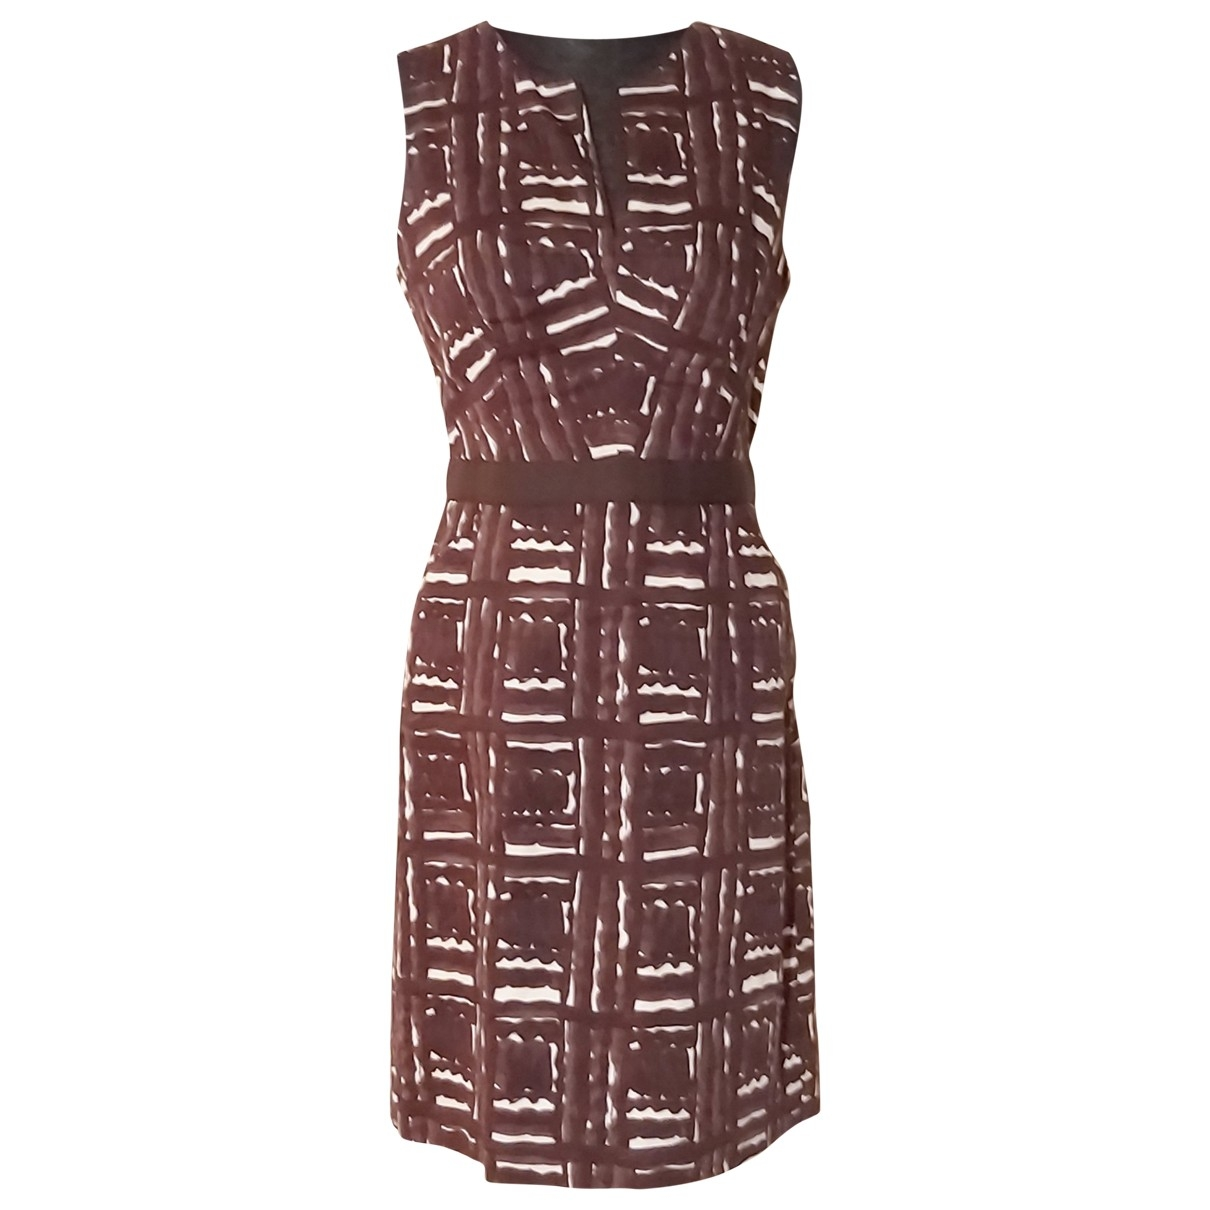 Milly \N Brown Cotton dress for Women 6 US